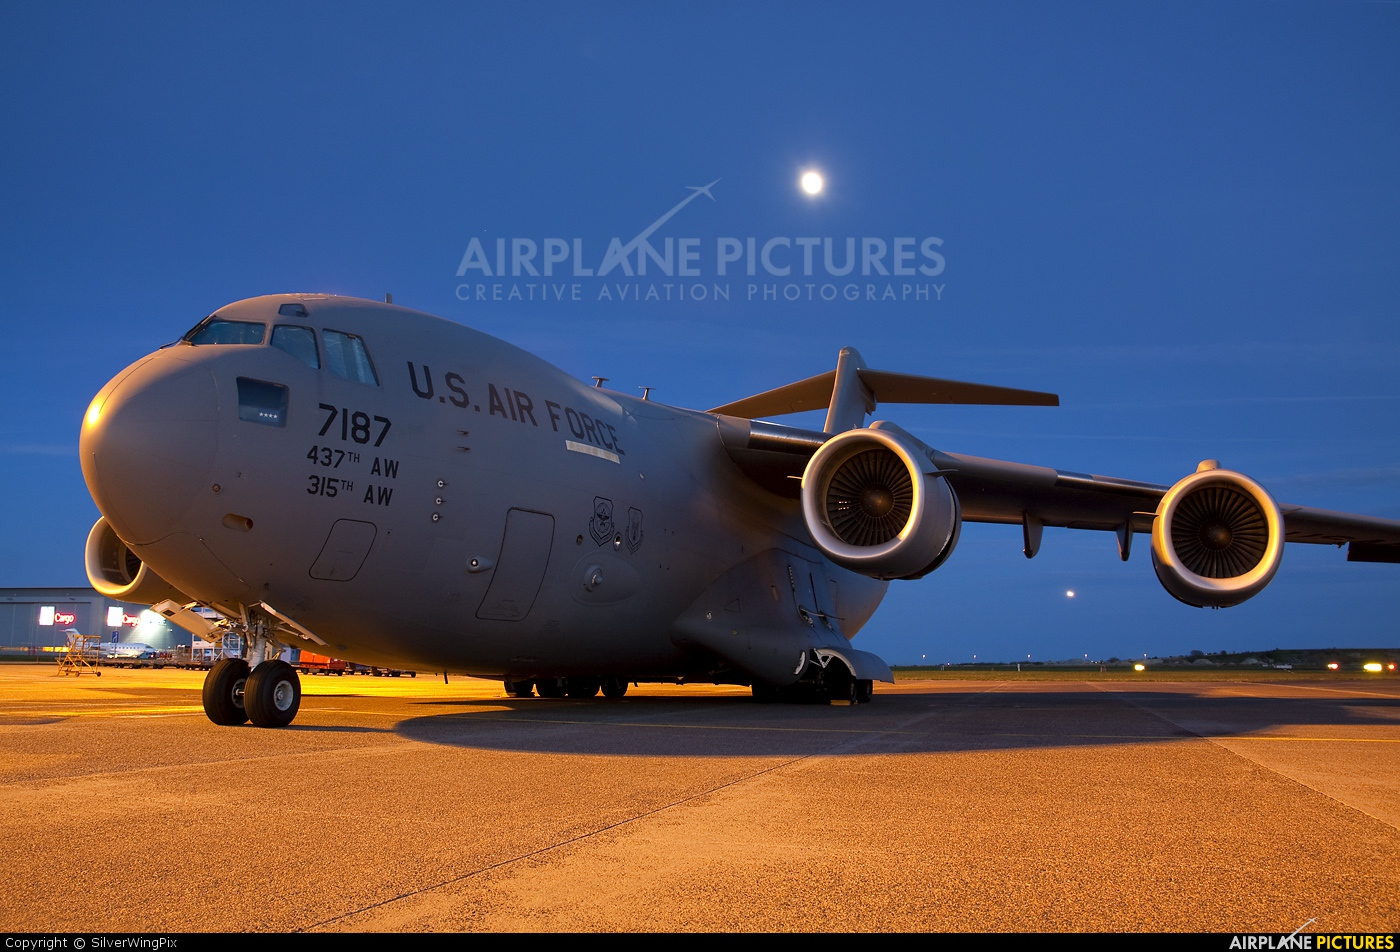 USA - Air Force 07-7187 aircraft at Undisclosed location